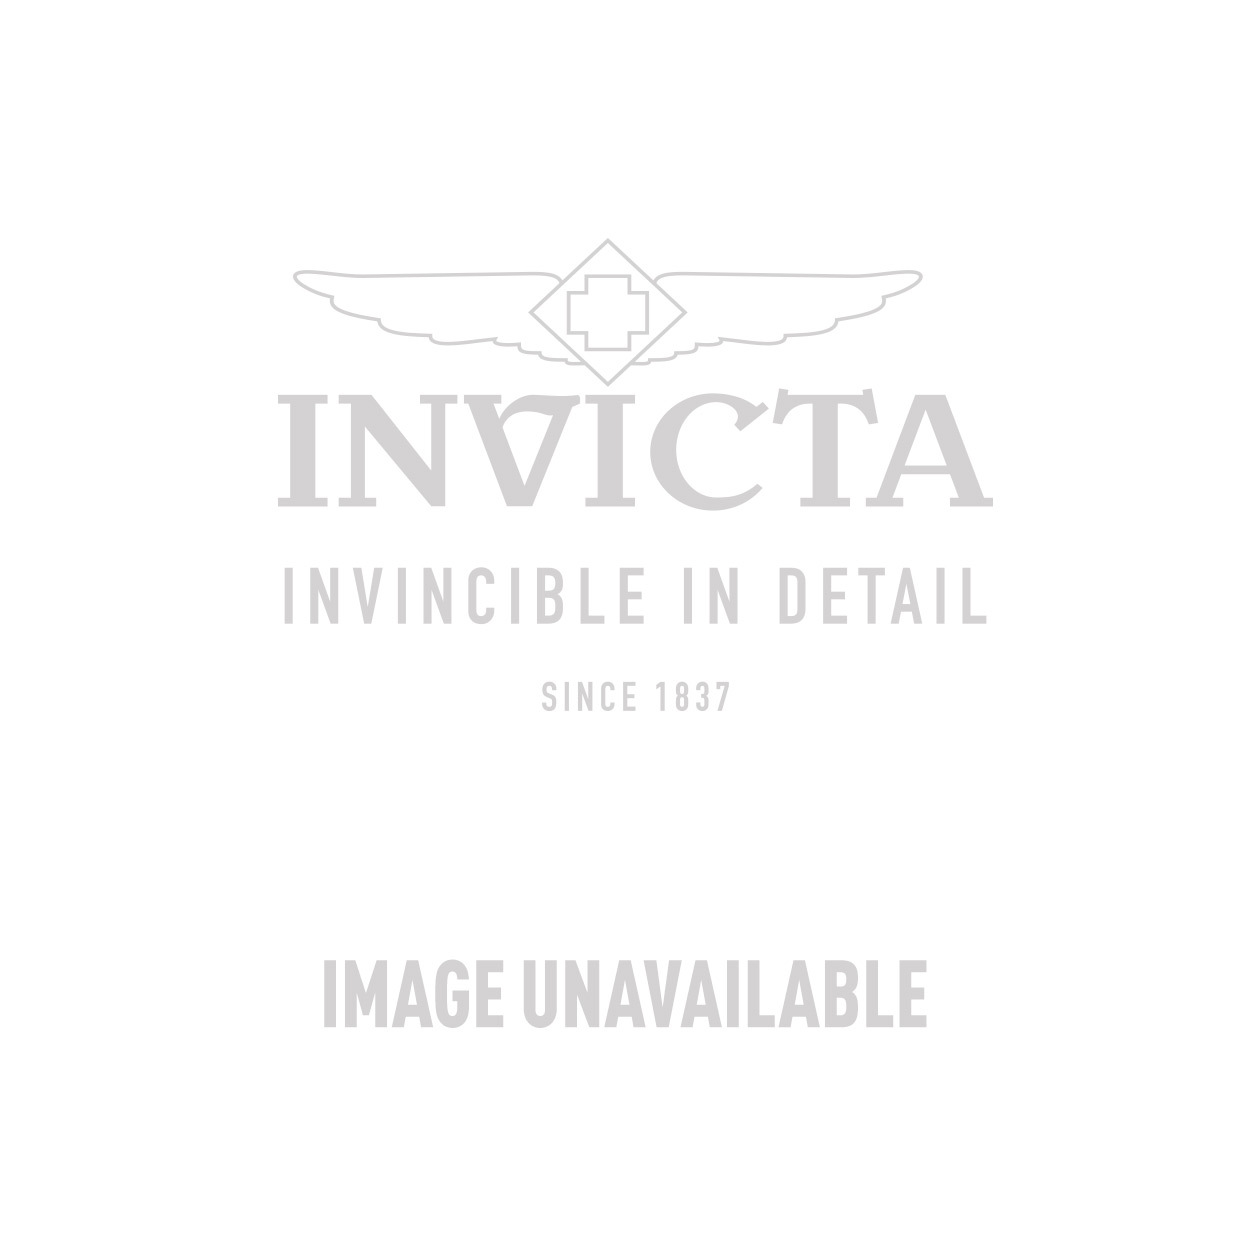 Invicta Pro Diver Quartz Watch - Stainless Steel case Stainless Steel band - Model 14350